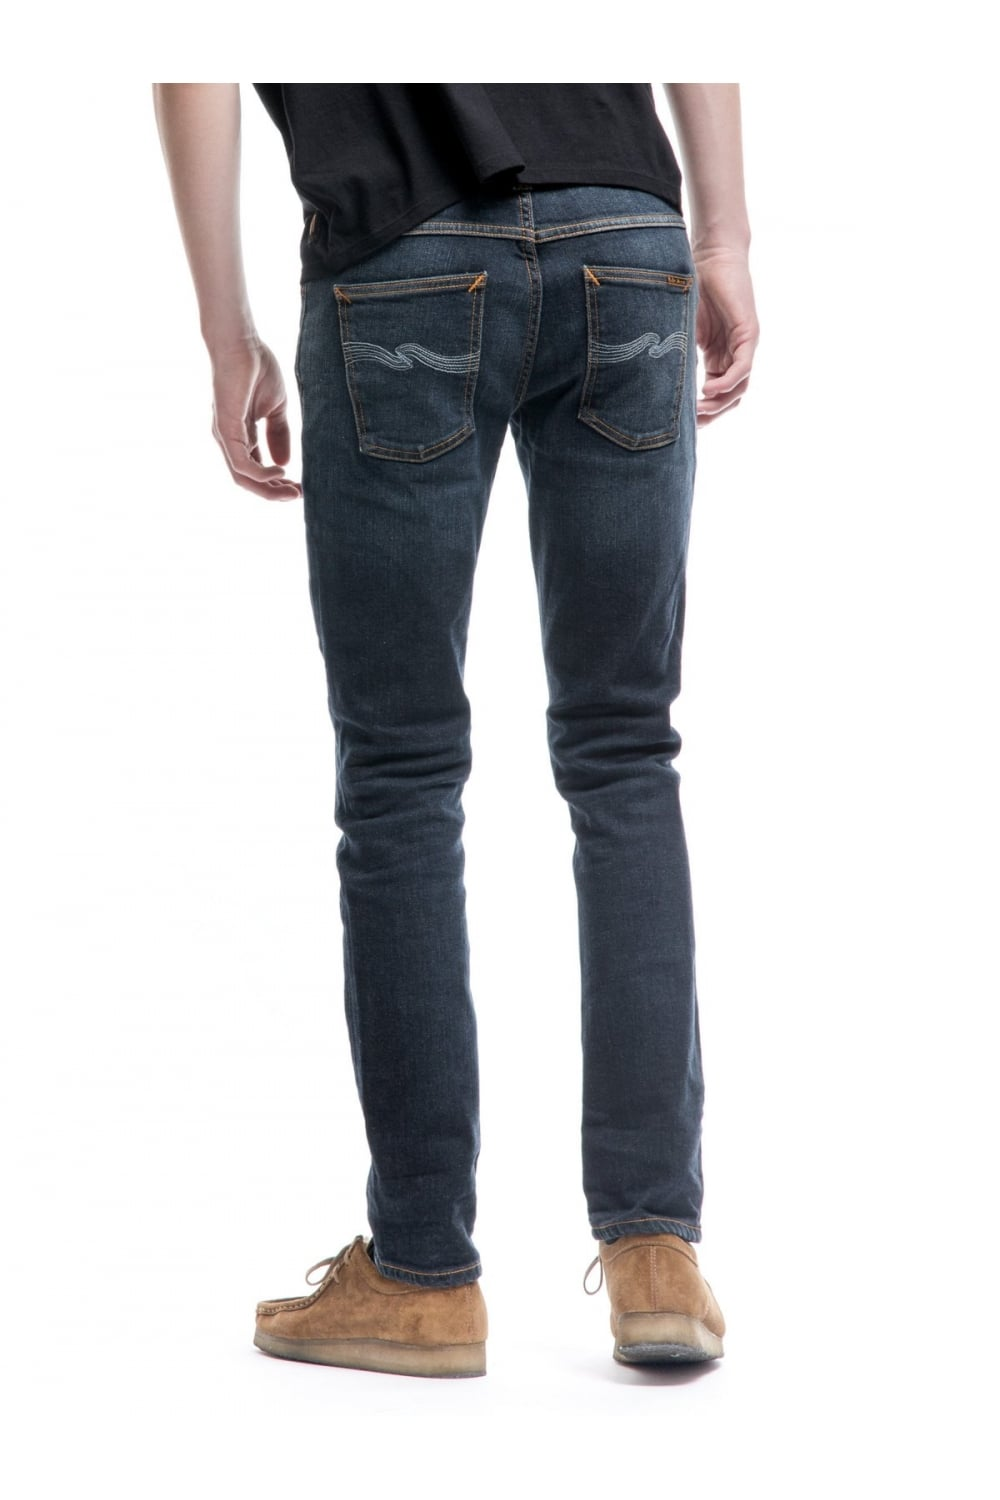 89617e73c309 Nudie Jeans Co Tight Terry Skinny Fit Jeans (Double Indigo)